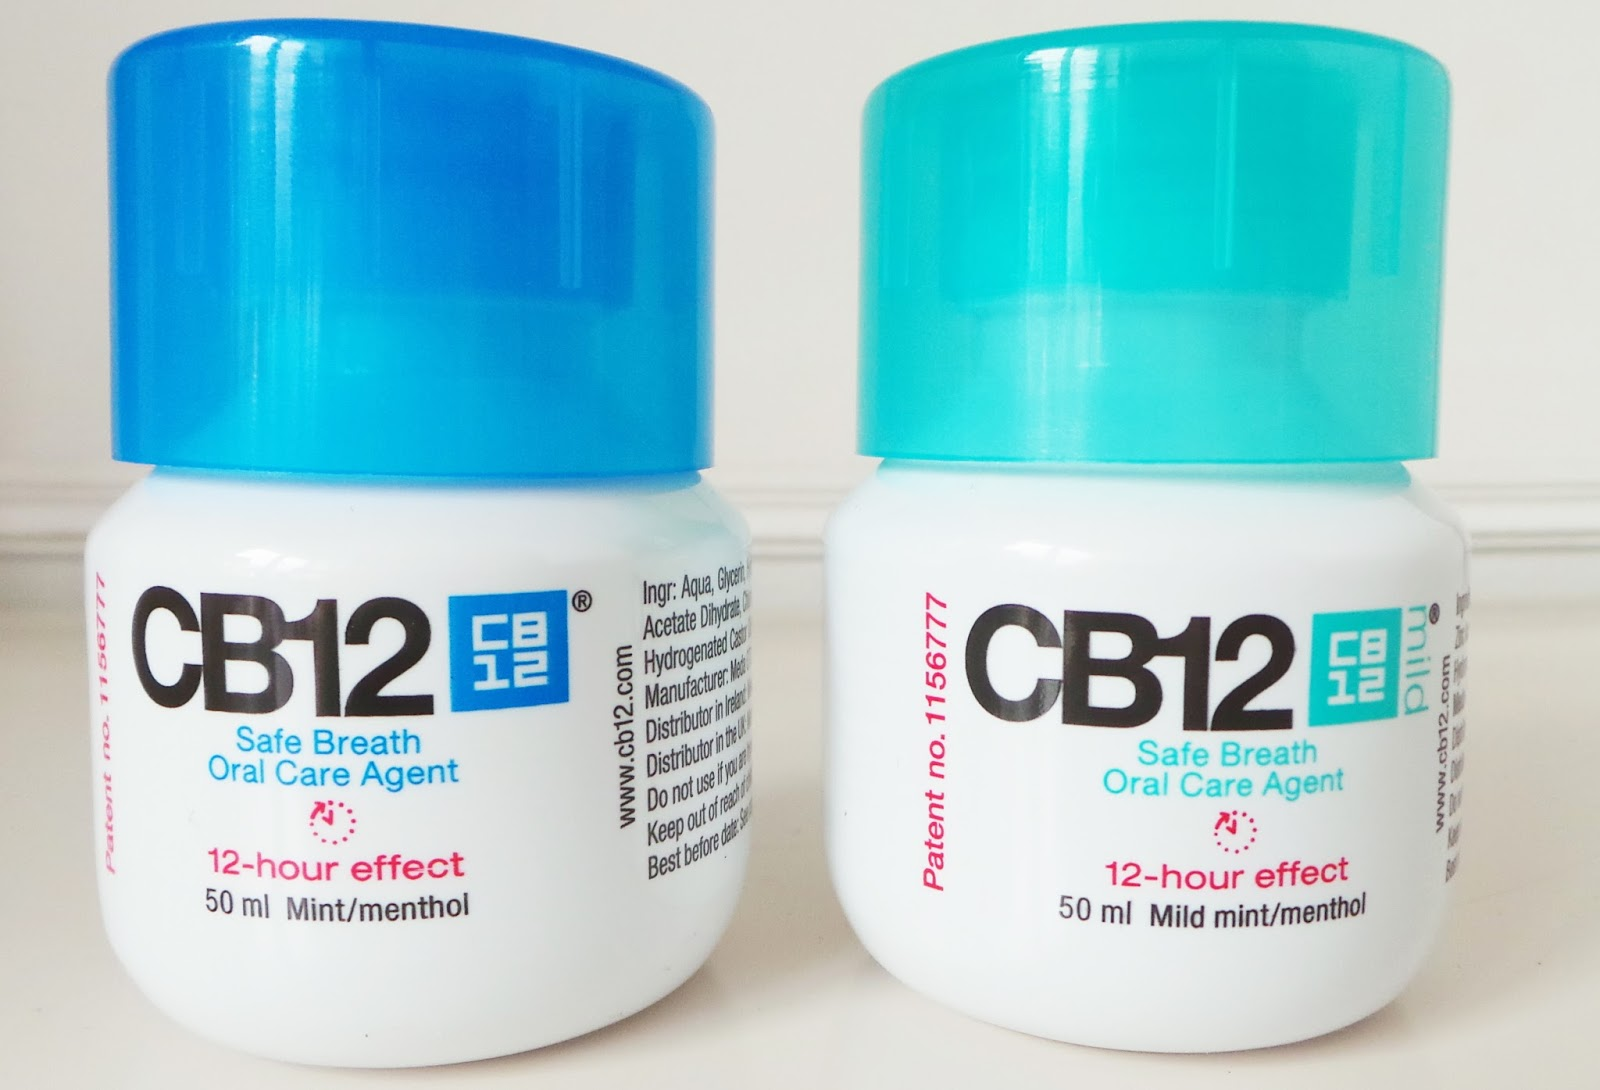 CB12, CB12 REVIEW, CB12 GUM REVIEW, CB12 MOUTH RINSE REVIEW, CB12 PRODUCTS, LIFESTYLE BLOG, LIFESTYLE BLOGGER, UK LIFESTYLE BLOGGER, LBLOGGER, BEAUTY BLOG, BEAUTY BLOGGER, UK BEAUTY BLOGGER, ORAL HEALTH BLOG